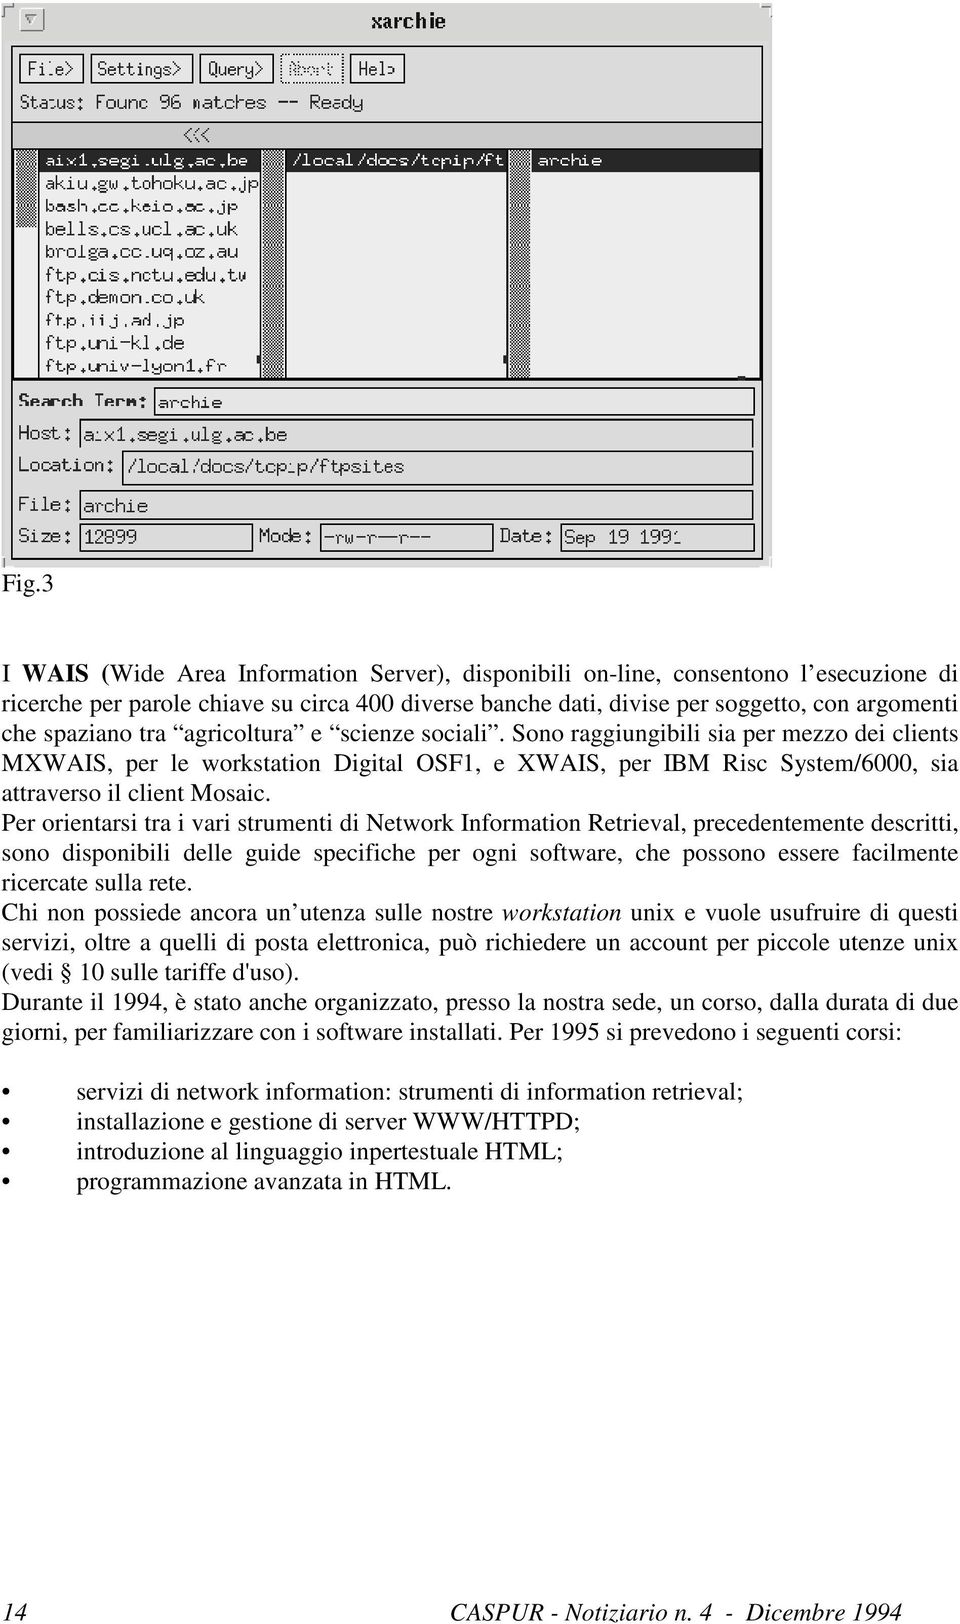 Per orientarsi tra i vari strumenti di Network Information Retrieval, precedentemente descritti, sono disponibili delle guide specifiche per ogni software, che possono essere facilmente ricercate